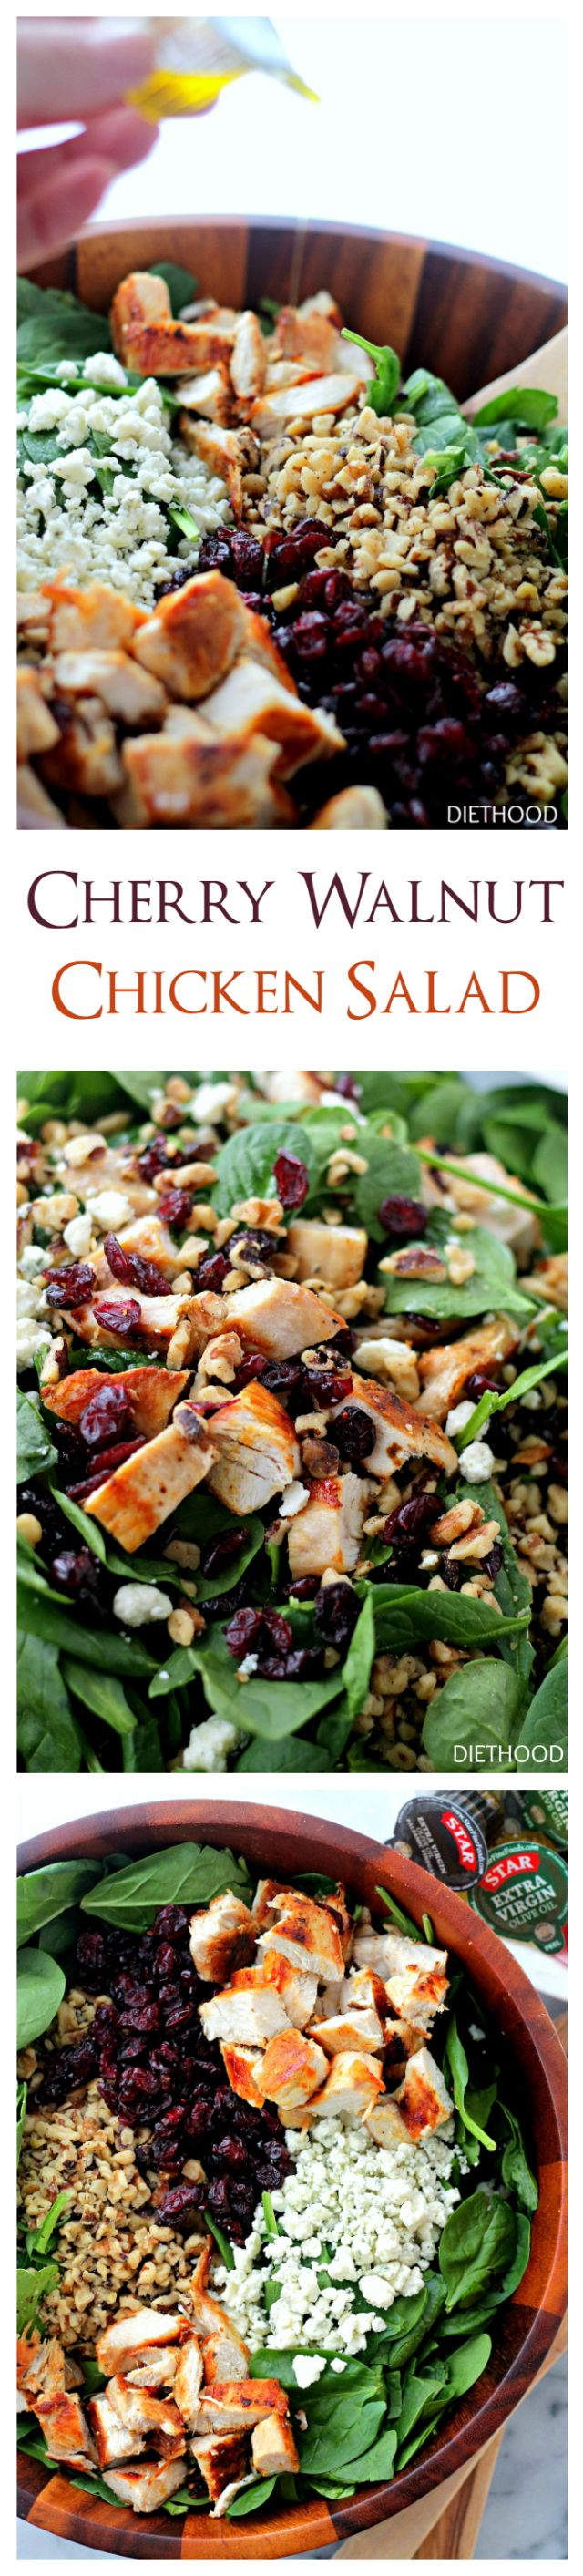 Cherry Walnut Chicken Salad - Delicious chicken salad featuring a combination of dried cherries, walnuts and baby spinach tossed with a simple olive oil and vinegar dressing.